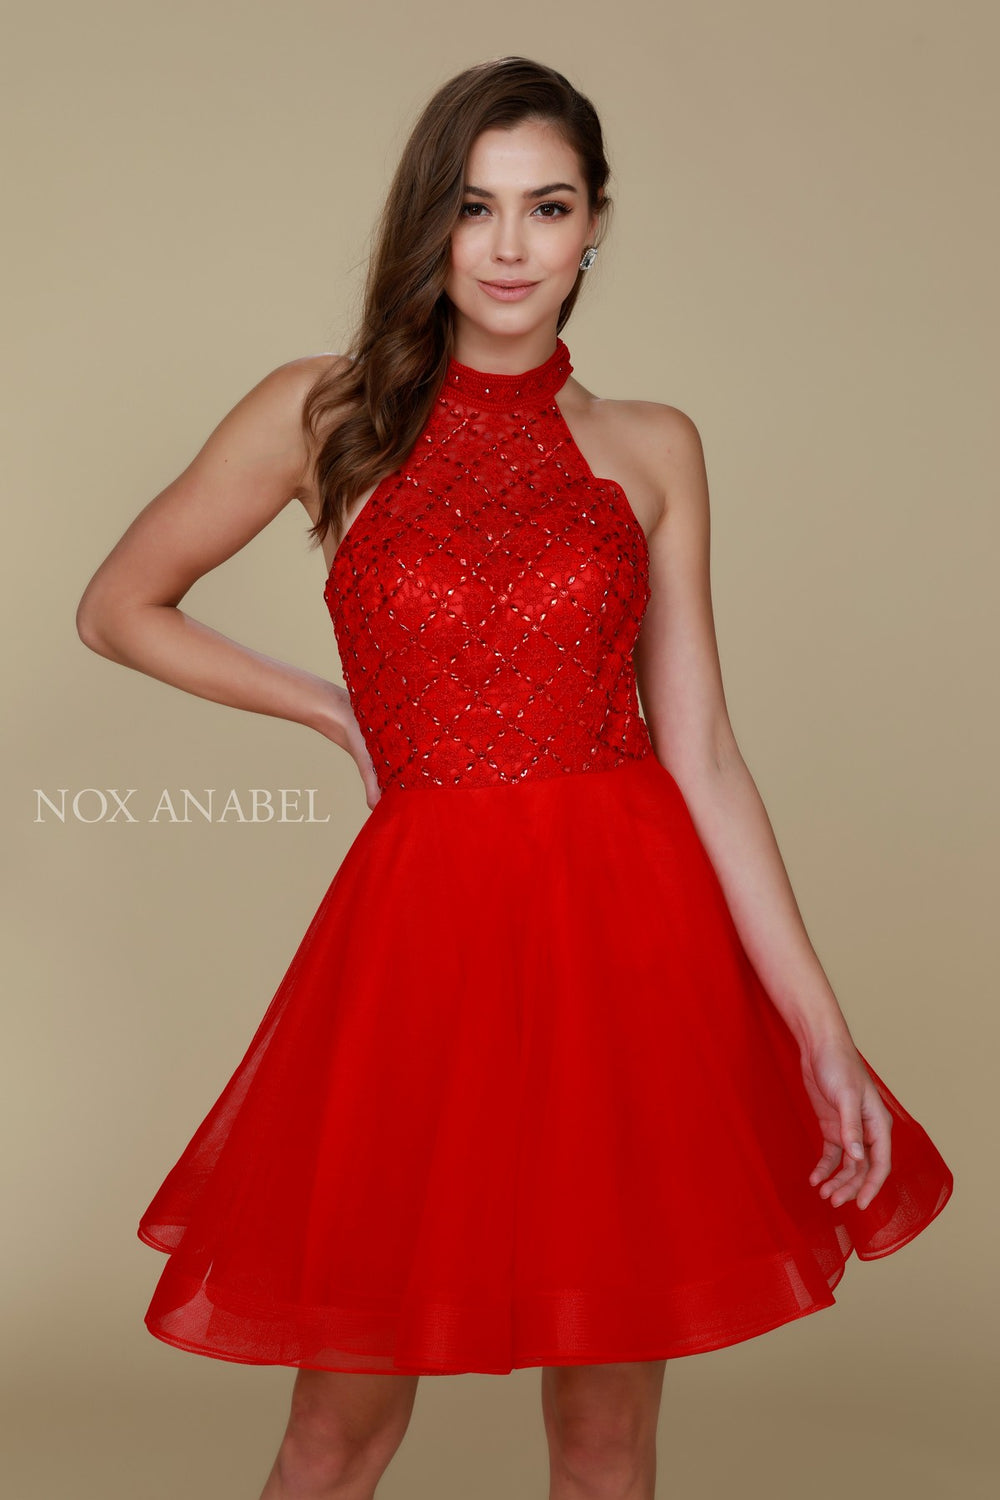 BEADED EMBELISHED ILLUSION HIGH HALTER A-LINE PROM DRESS